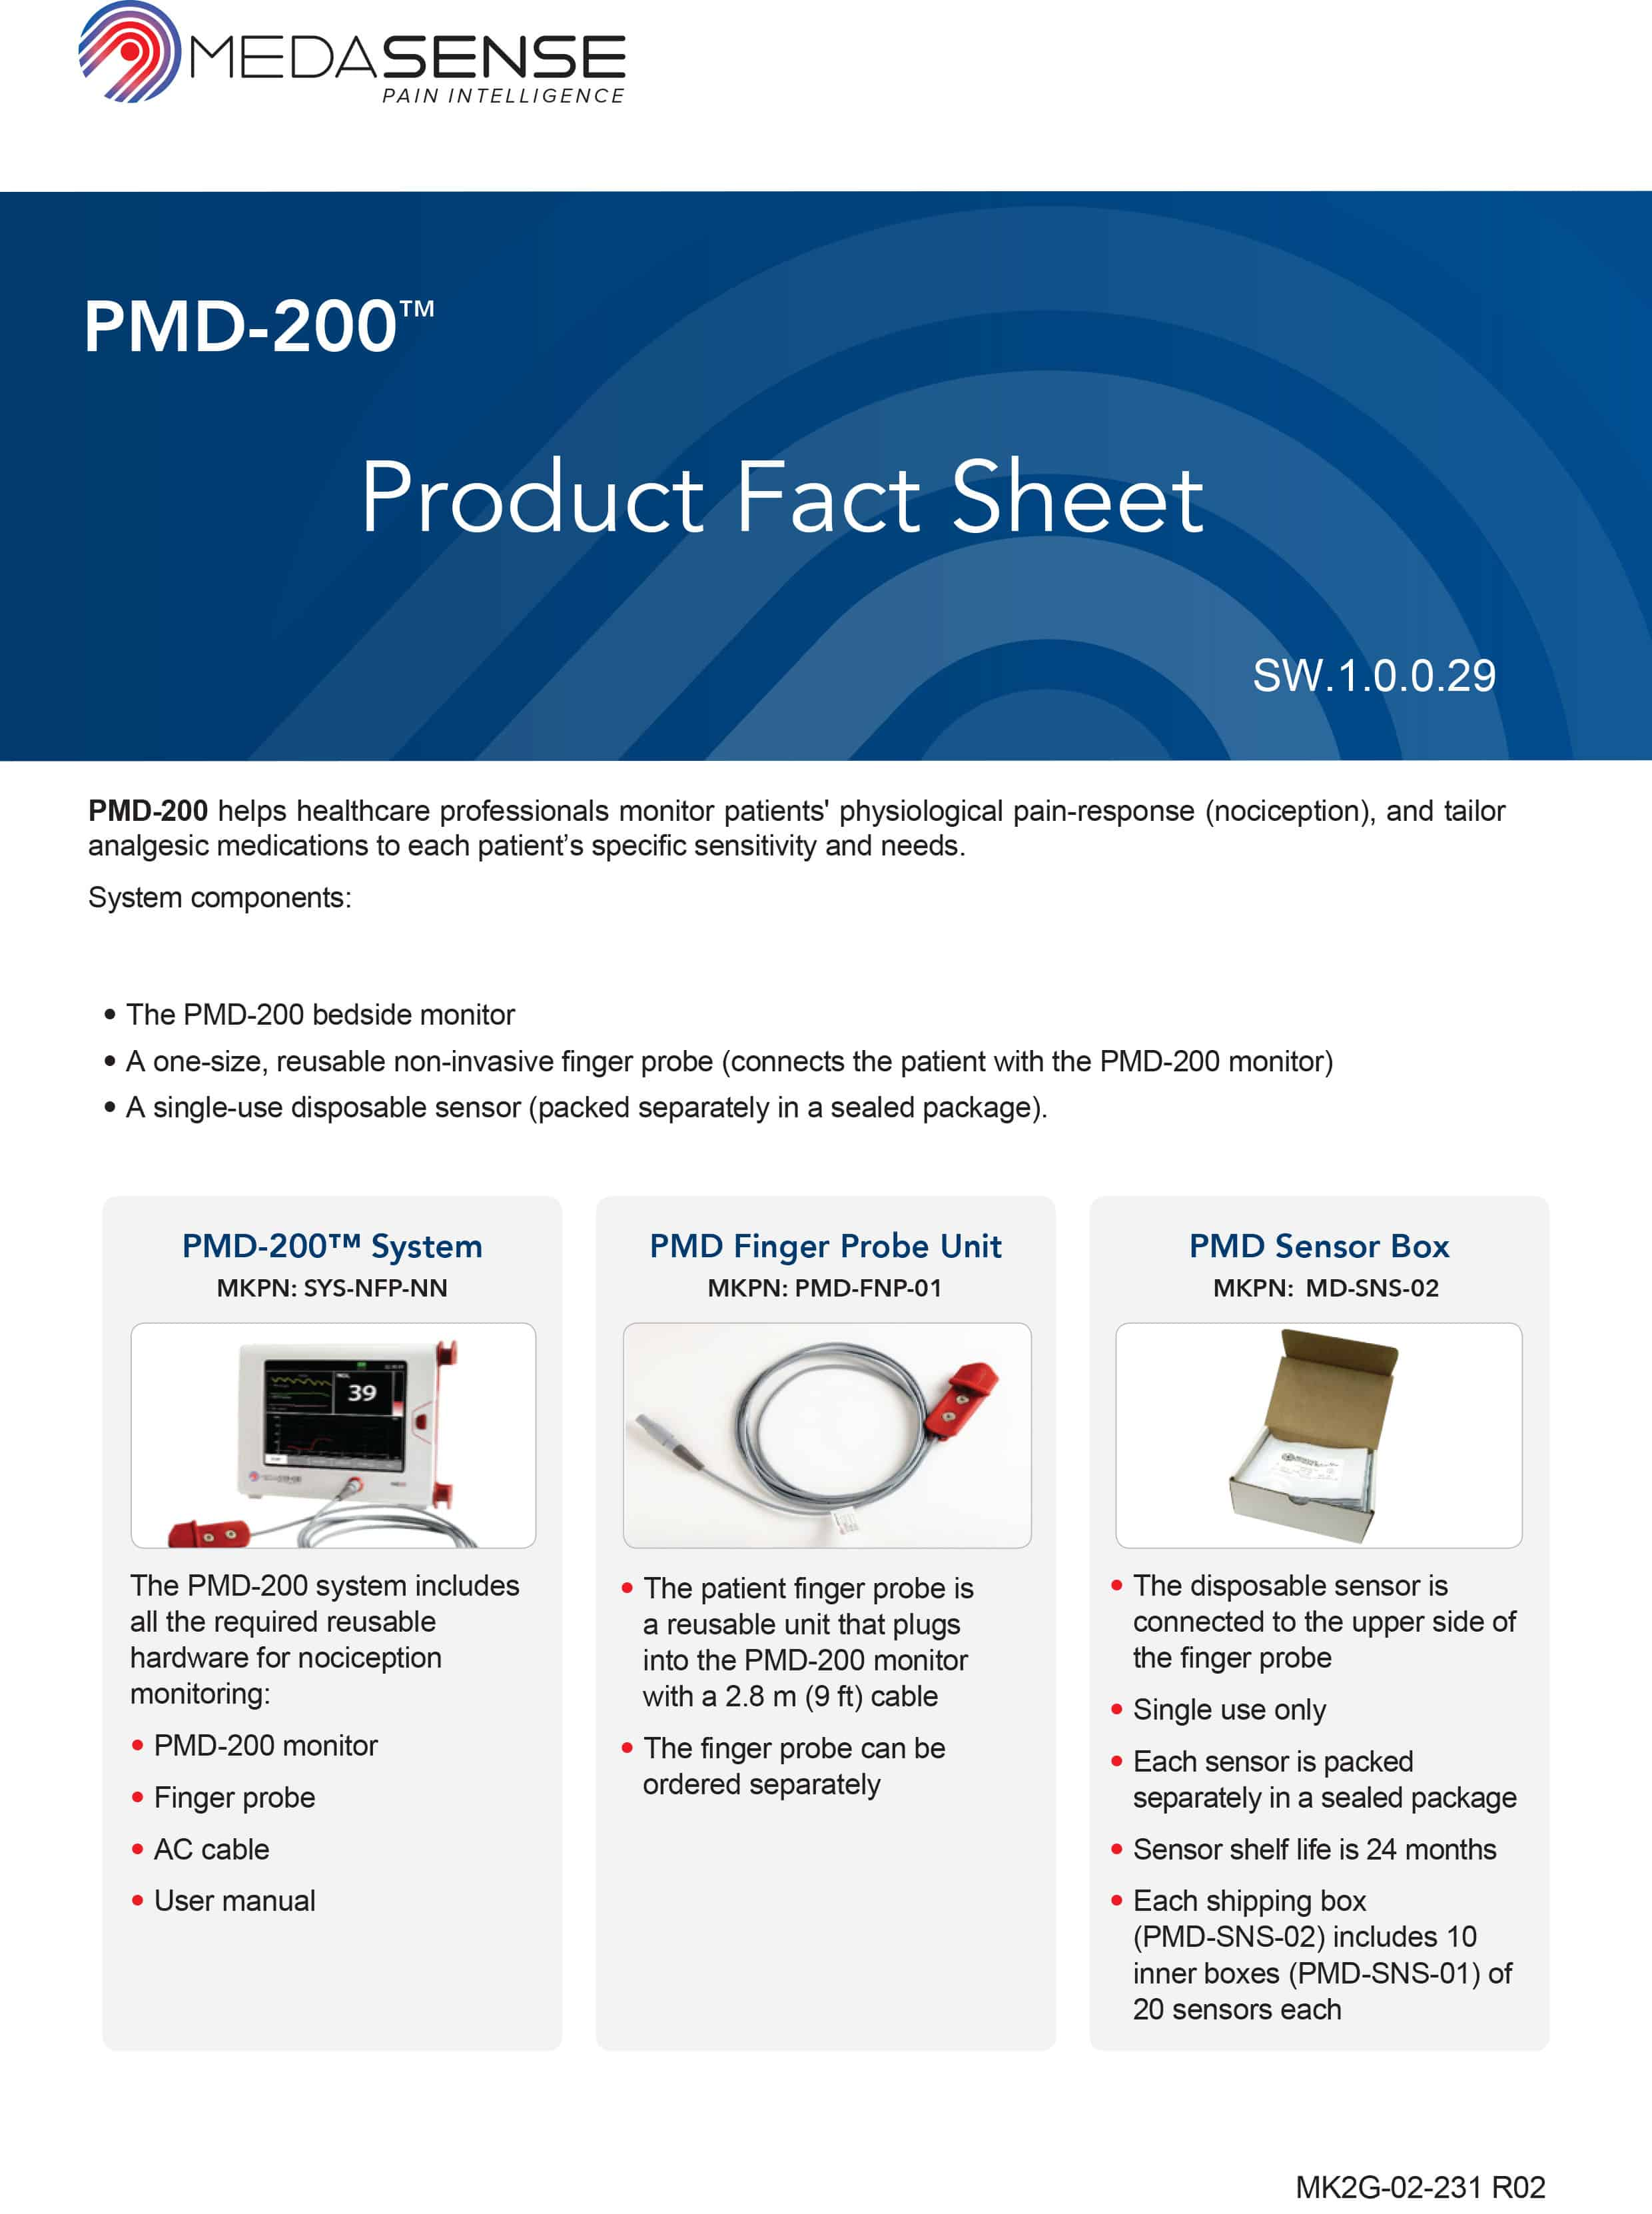 PMD-200 Medasense product fact sheet